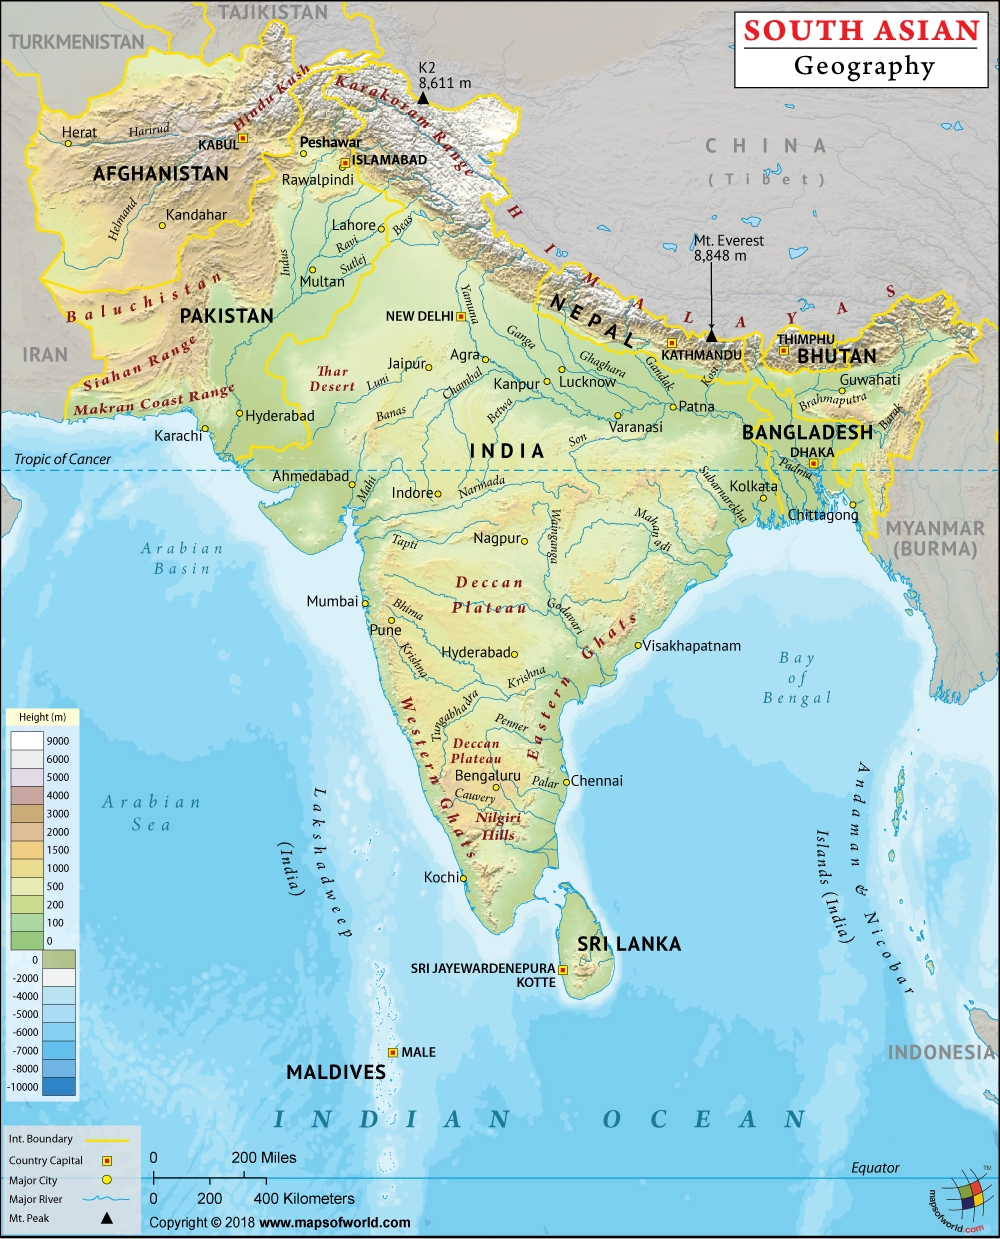 Physical Map Of South Asia South Asia Physical Map | Geography of South Asia